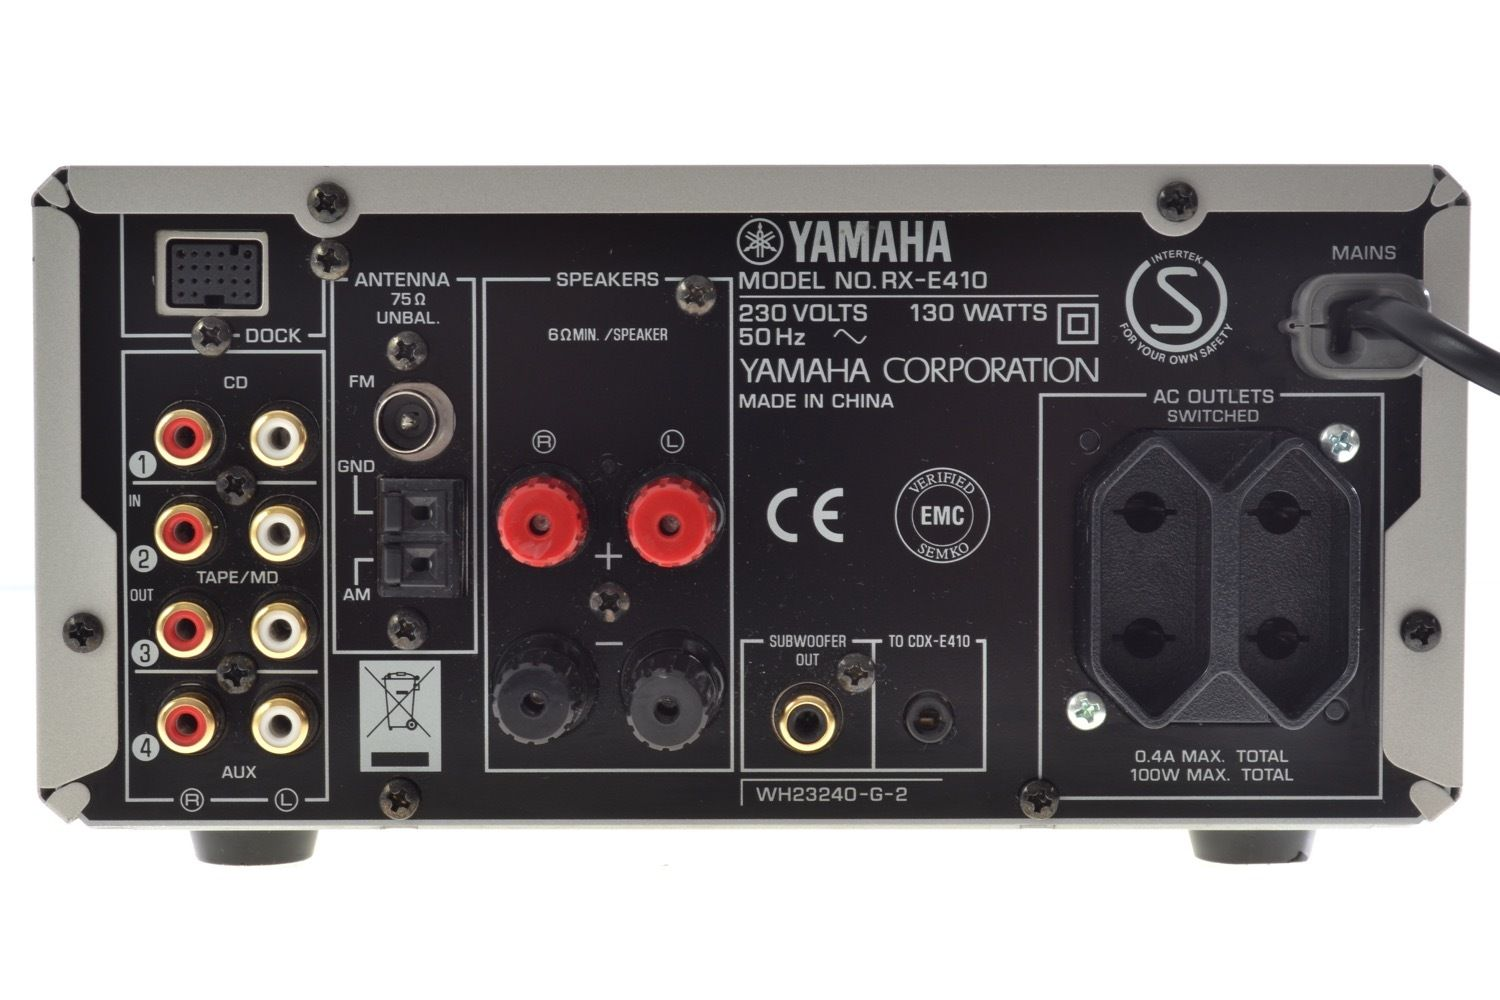 yamaha rx e410 stereo receiver audiobaza. Black Bedroom Furniture Sets. Home Design Ideas